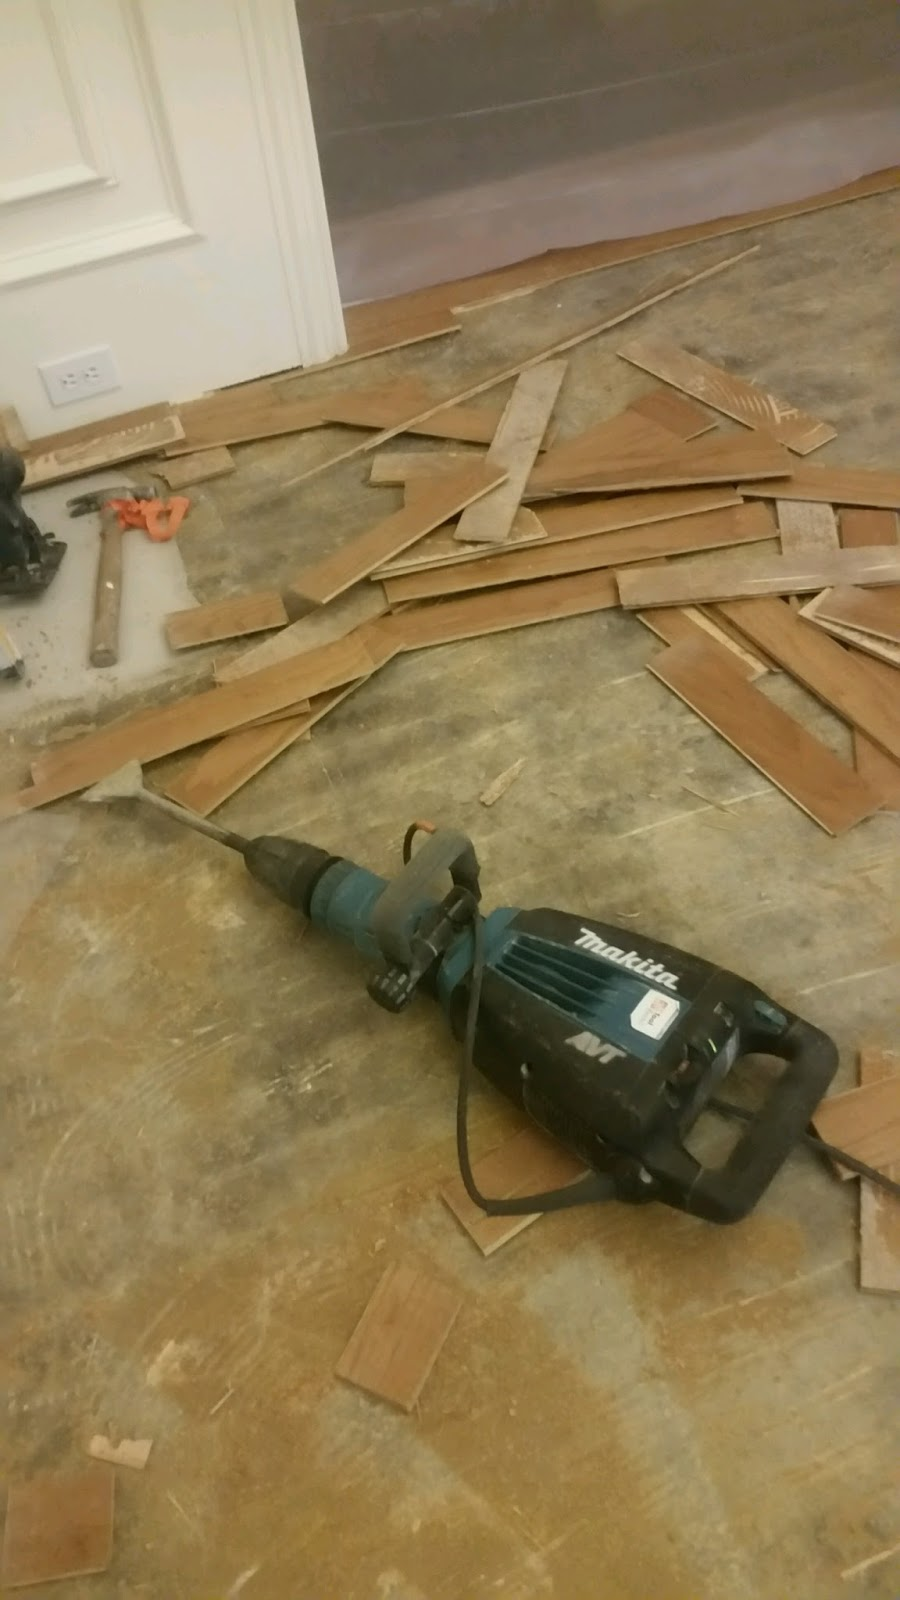 What Needs To Be Done First Is Use A Skill Saw And Set The Blade The Depth  Of The Thickness Of The Wood Flooring. Then You Want To Cut The Flooring  Strips ...